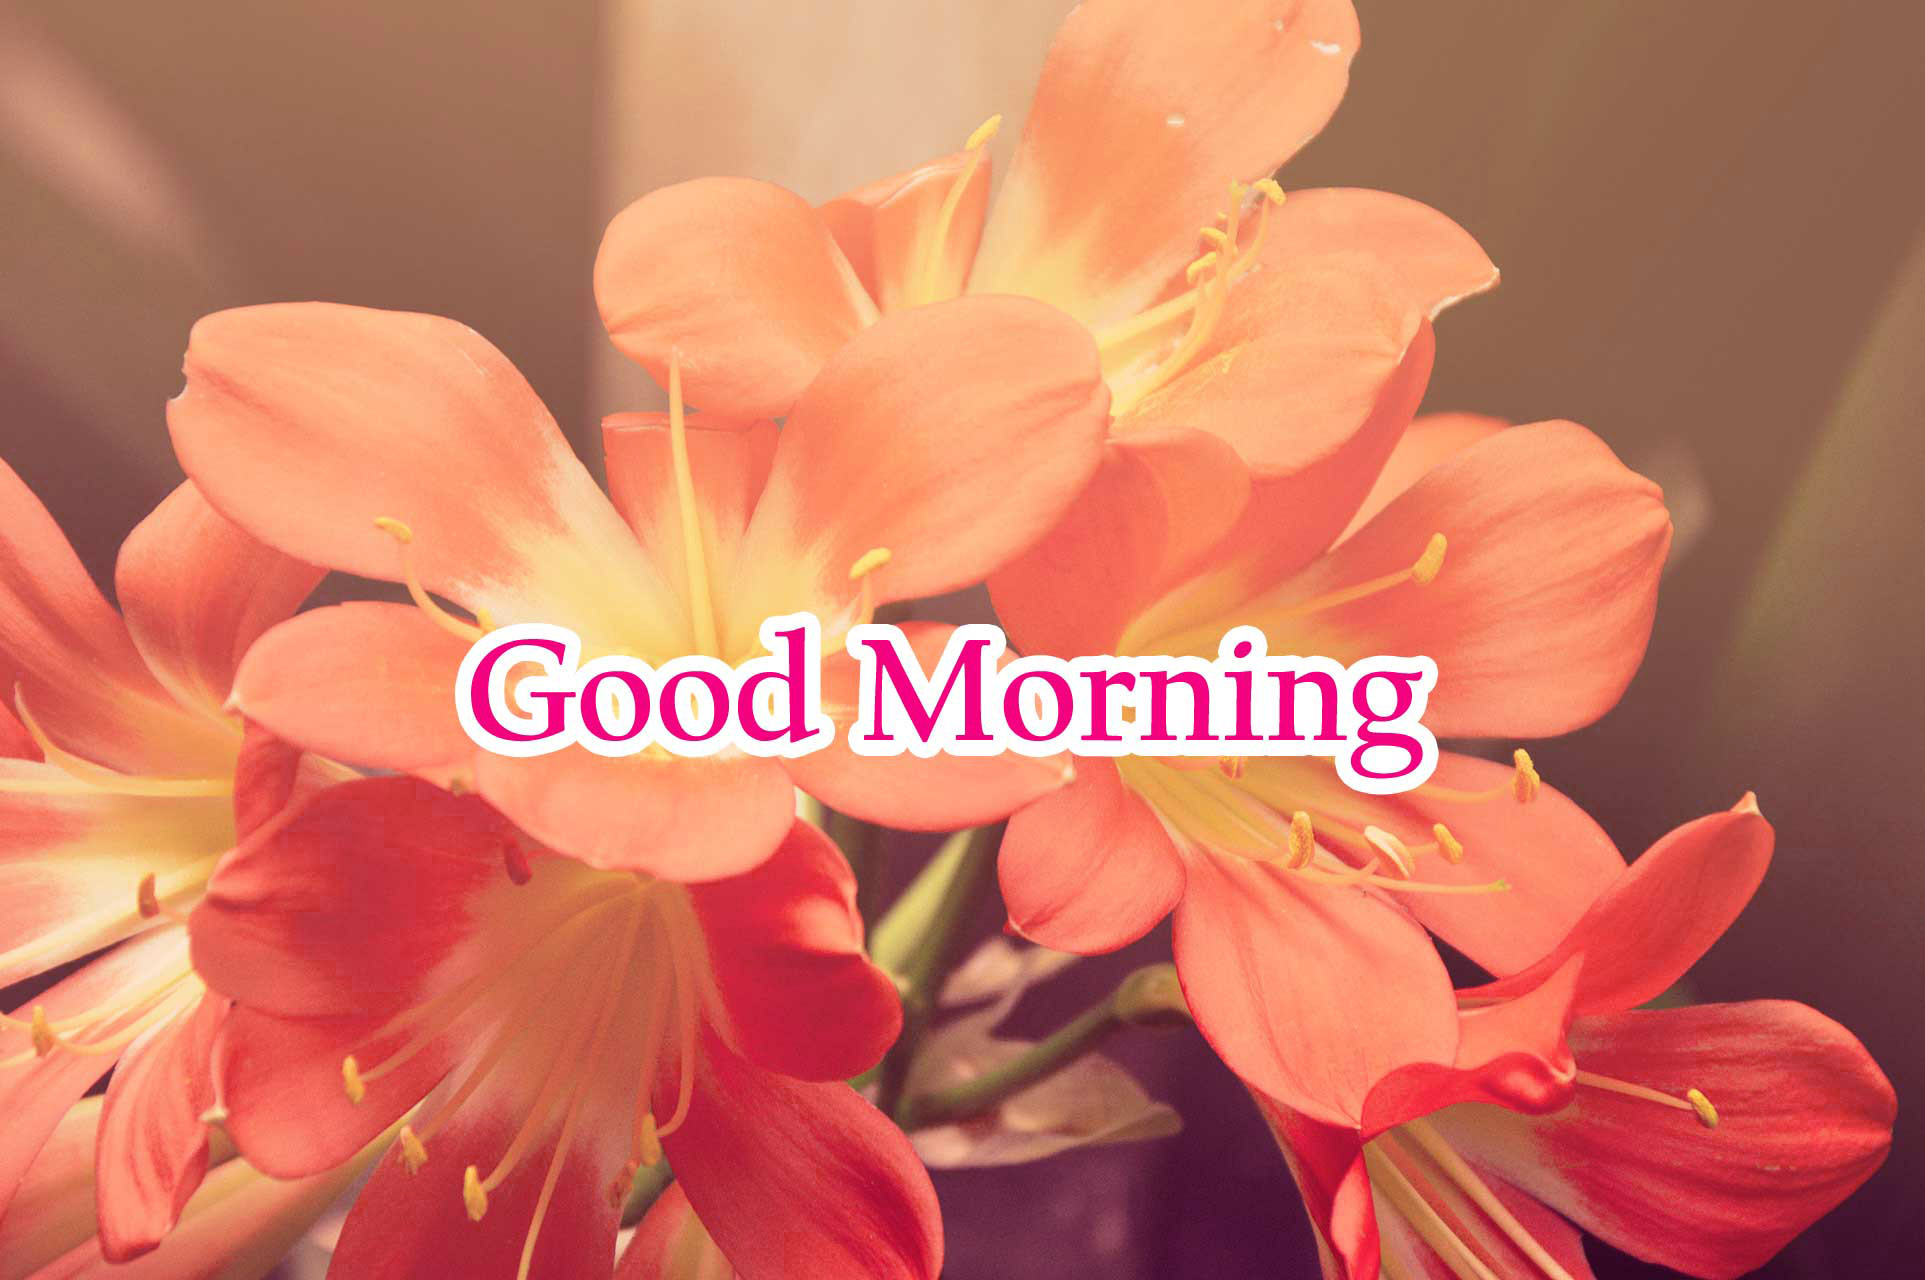 good morning Images for facebook tumblr pinterest and twitter Wallpaper Pics Free HD Download